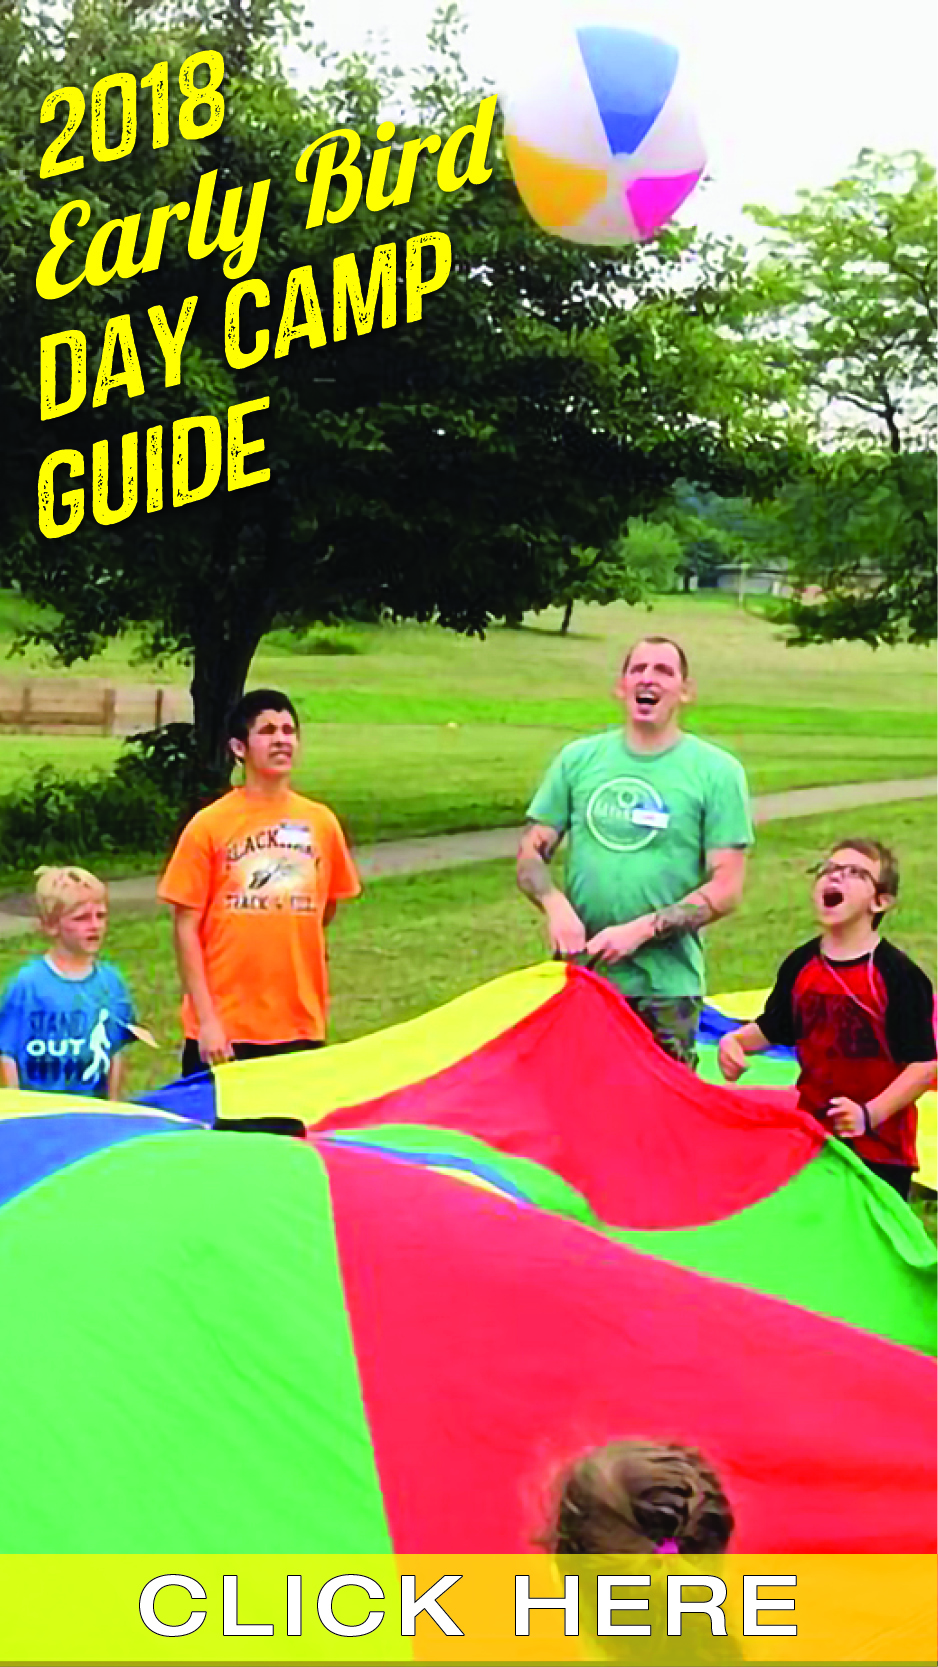 Download the 2018 East Cobber Early Bird Day Camp Guide